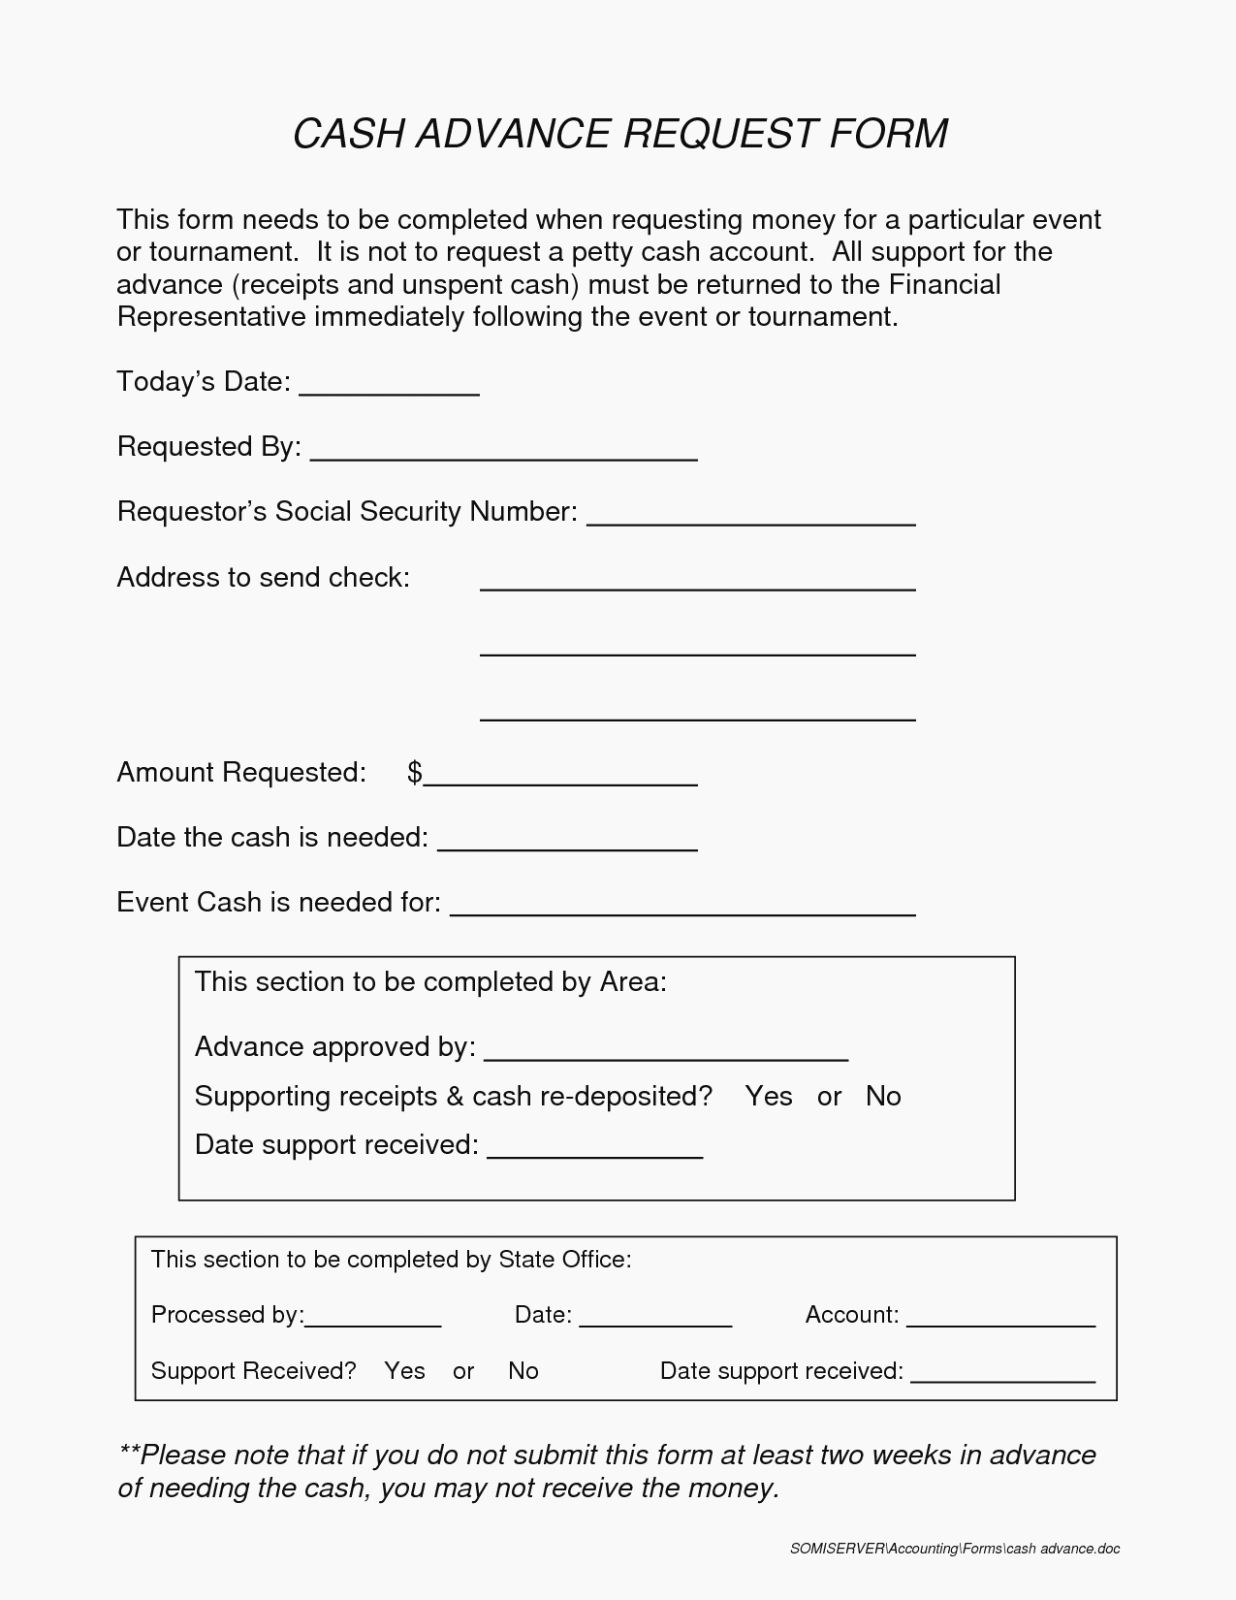 Travel Advance Request Form Template Beautiful 96 Cash Advance Request Form Travel Authorization For In 2020 Financial Plan Template Templates Credit Card Cash Advance